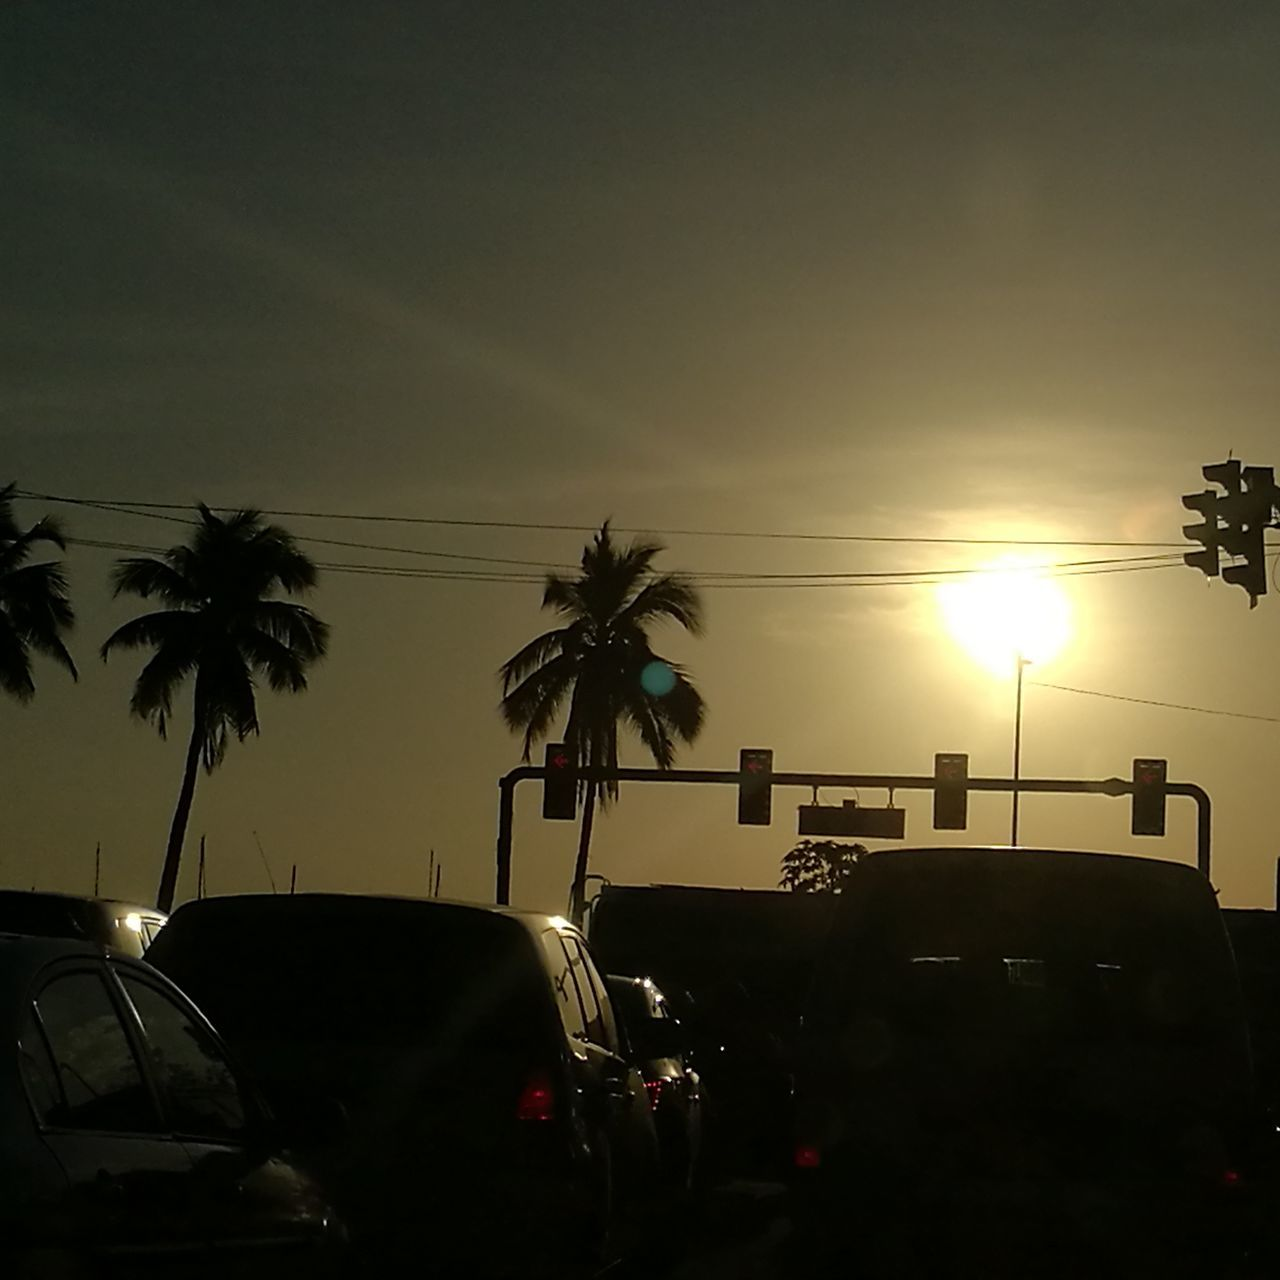 car, palm tree, sunset, land vehicle, transportation, mode of transport, tree, sun, sky, no people, silhouette, outdoors, day